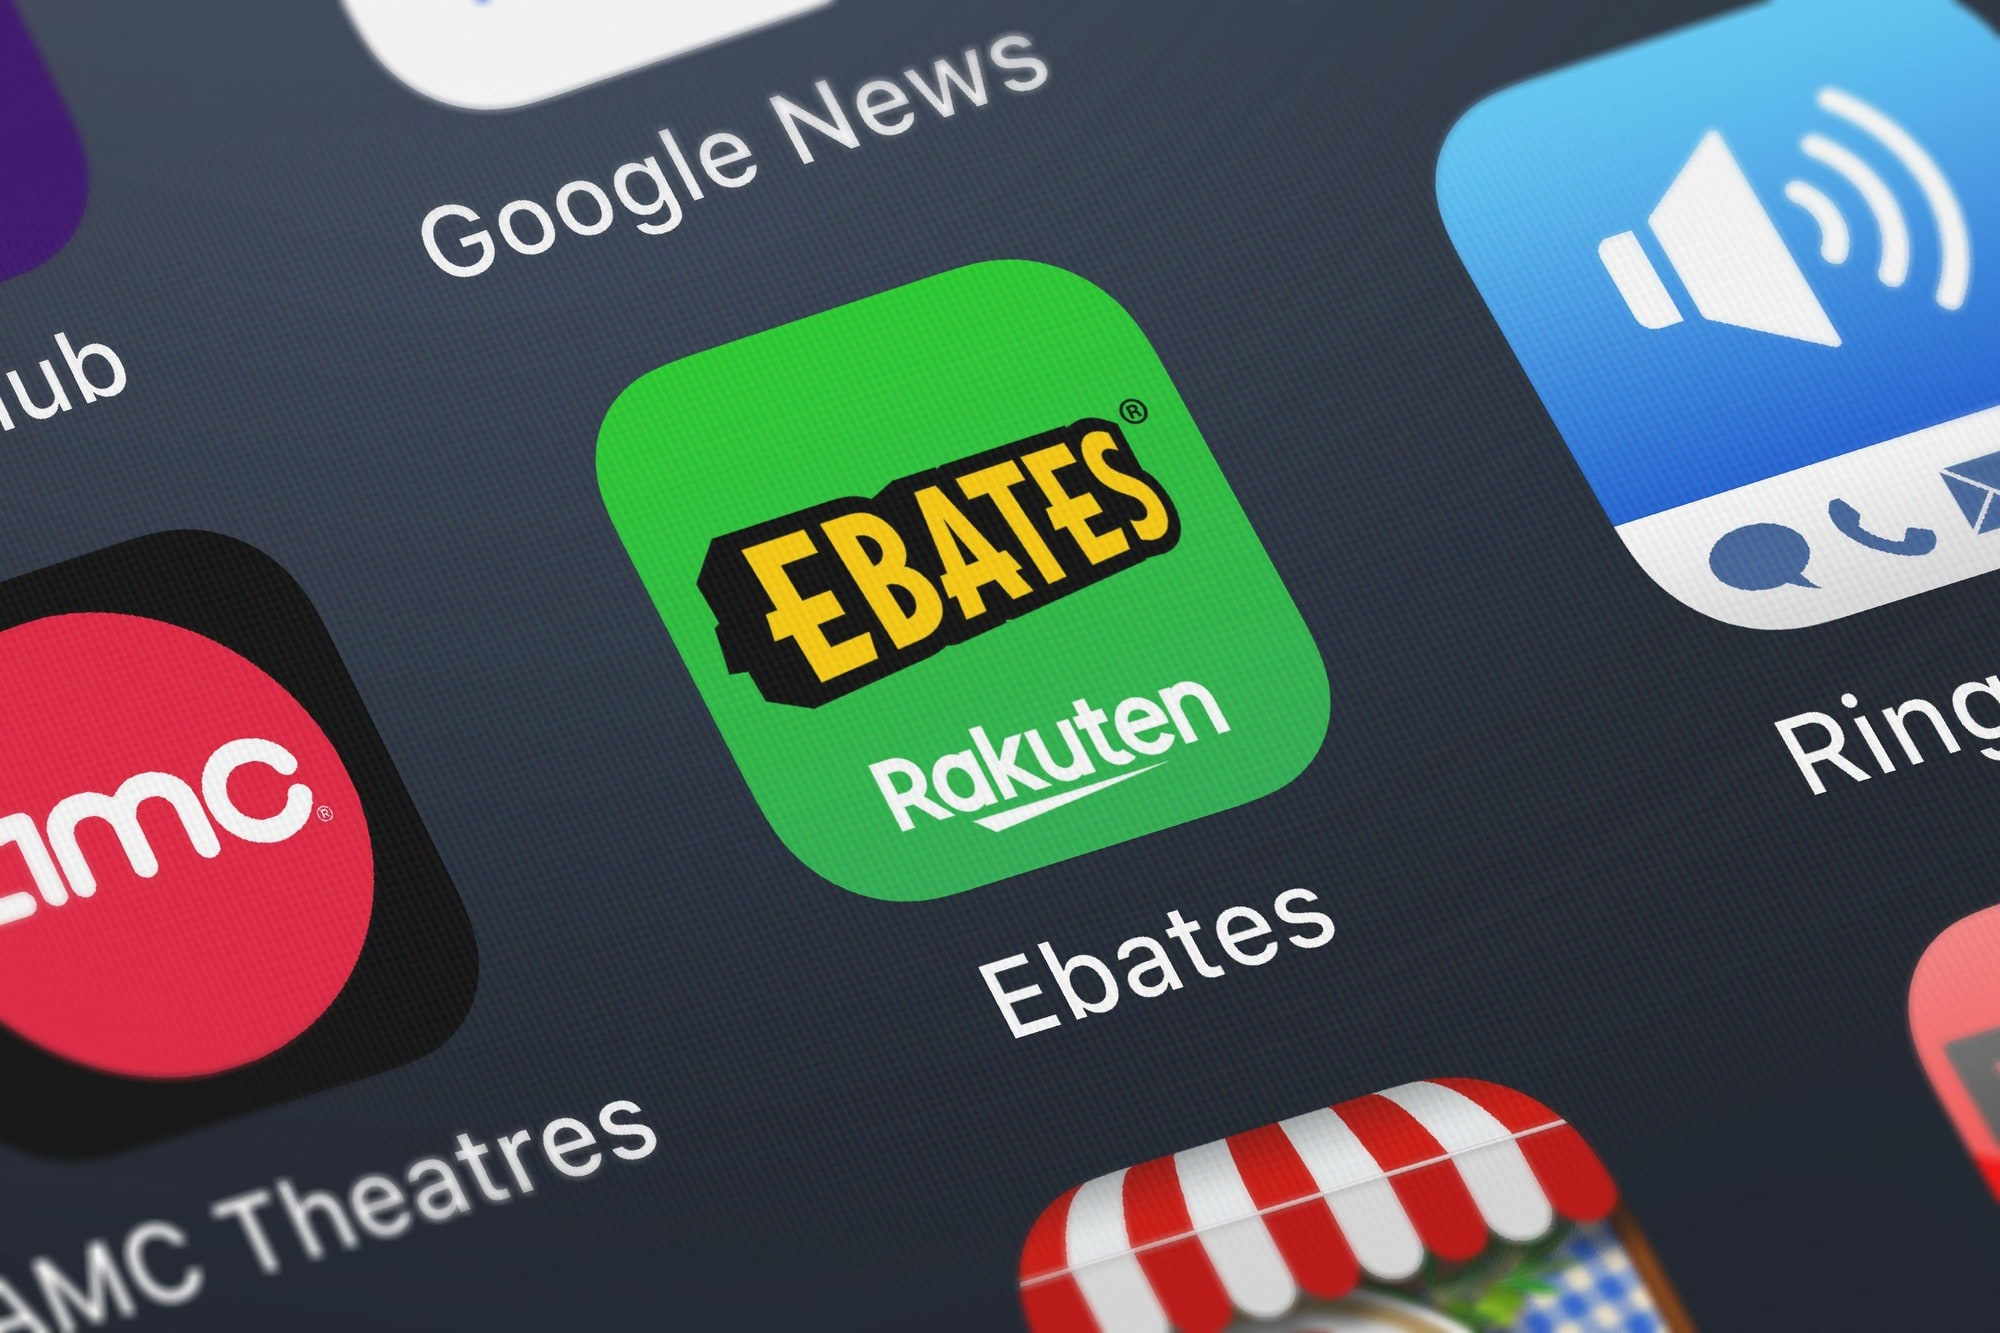 Rakuten (Ebates) Review: How Does It Work? [Full Guide] 1 | Mycashback.net